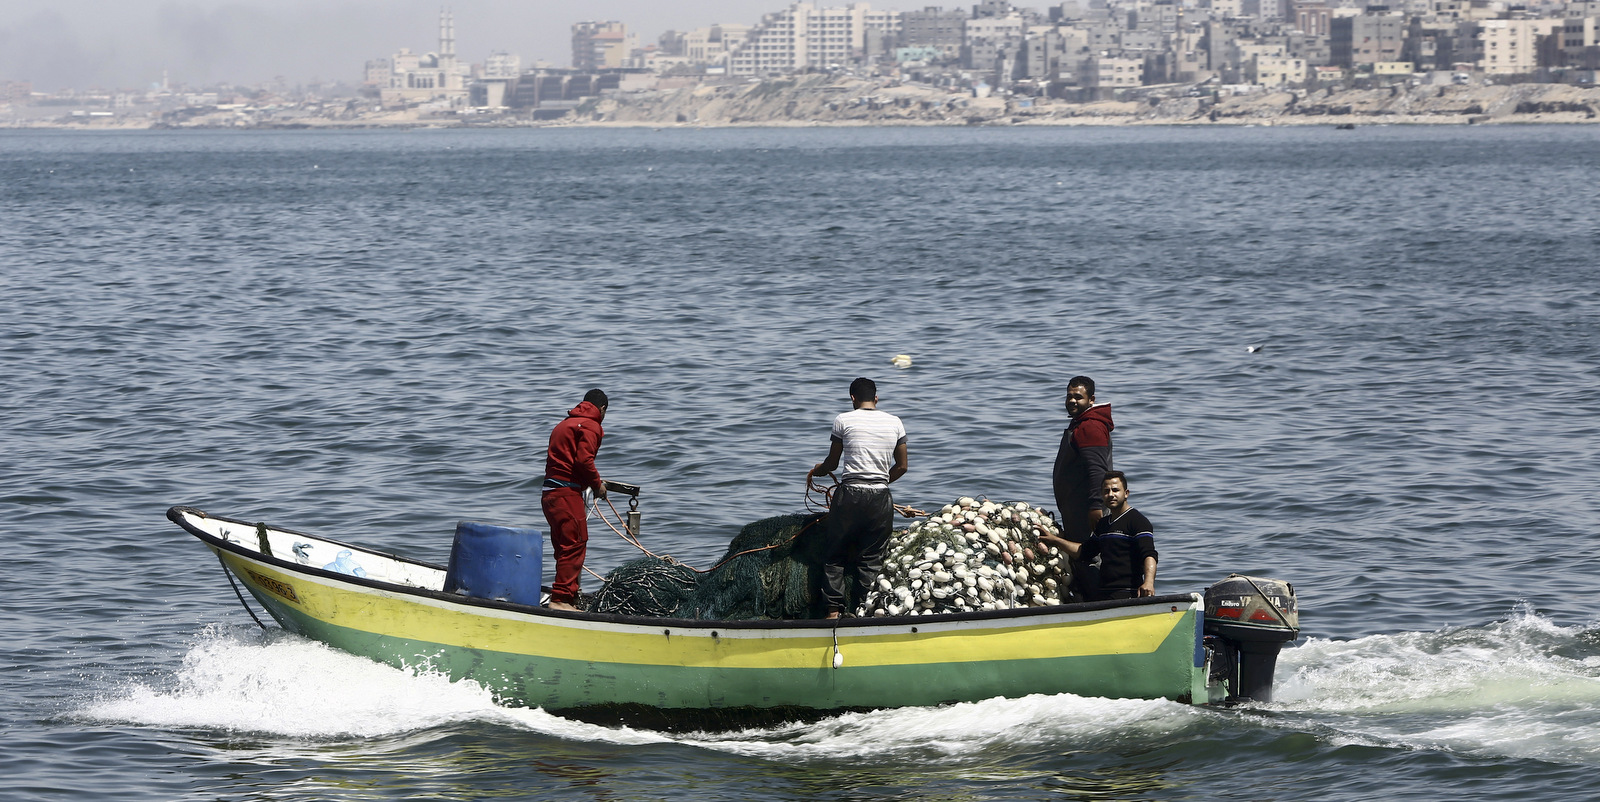 Fishermen ride their boat into the waters of the Mediterranean Sea near Gaza City, April 6, 2017. (AP/Adel Hana)